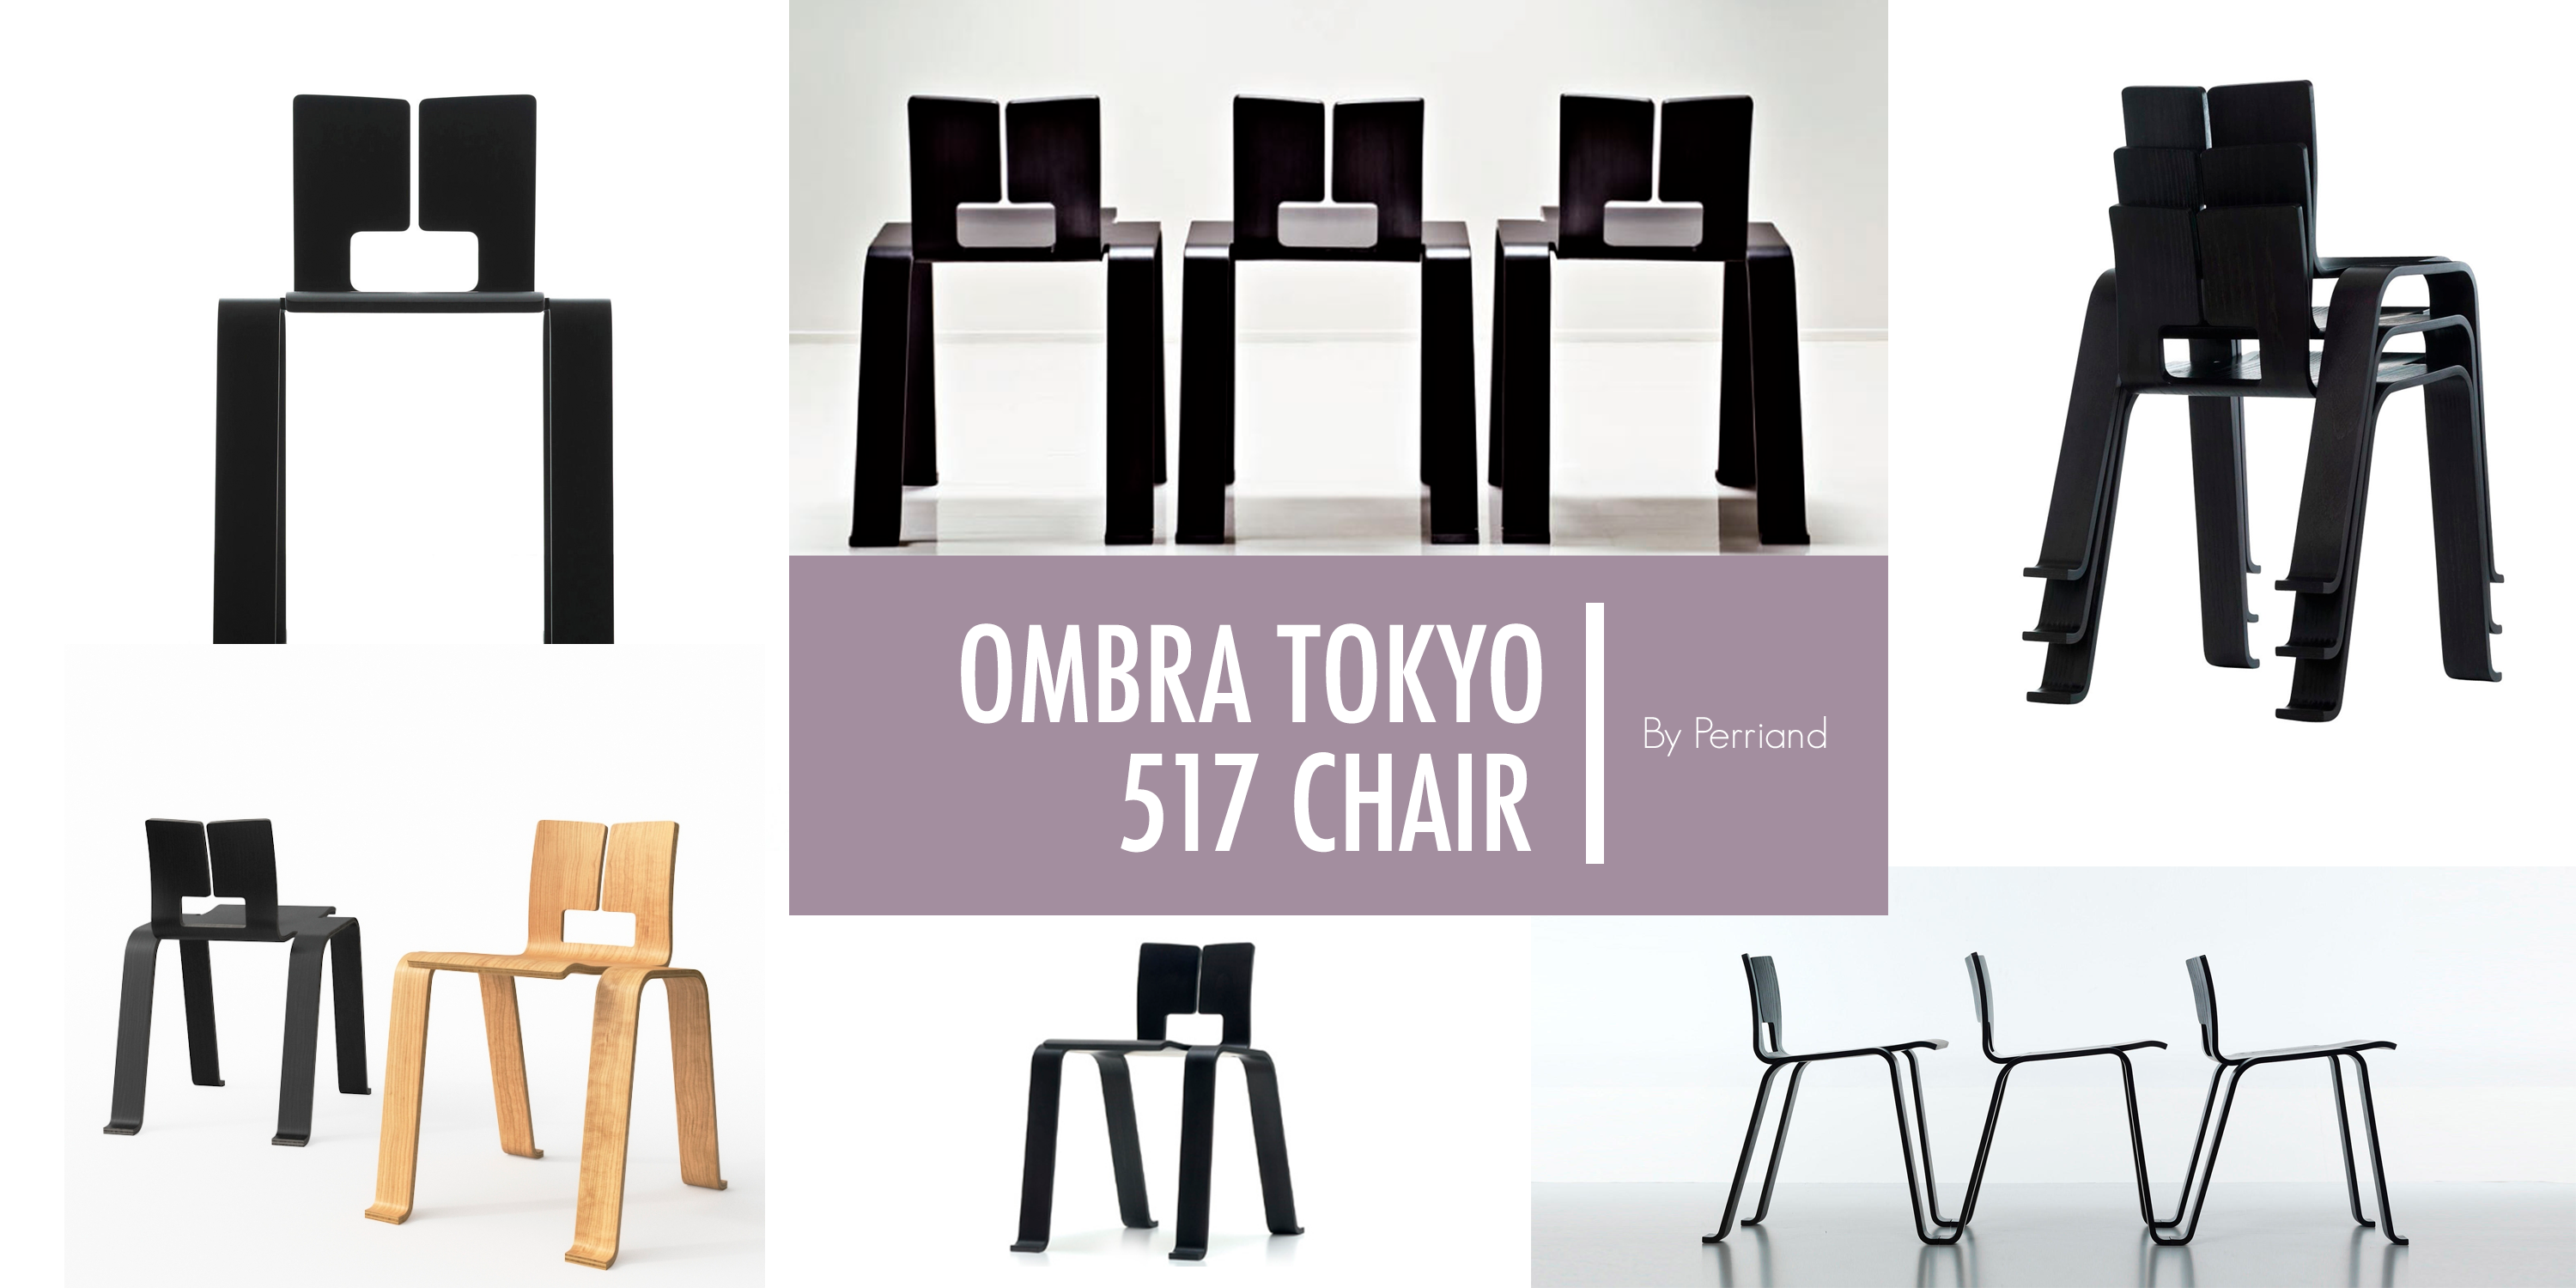 Ombra Tokyo 517 by Perriand